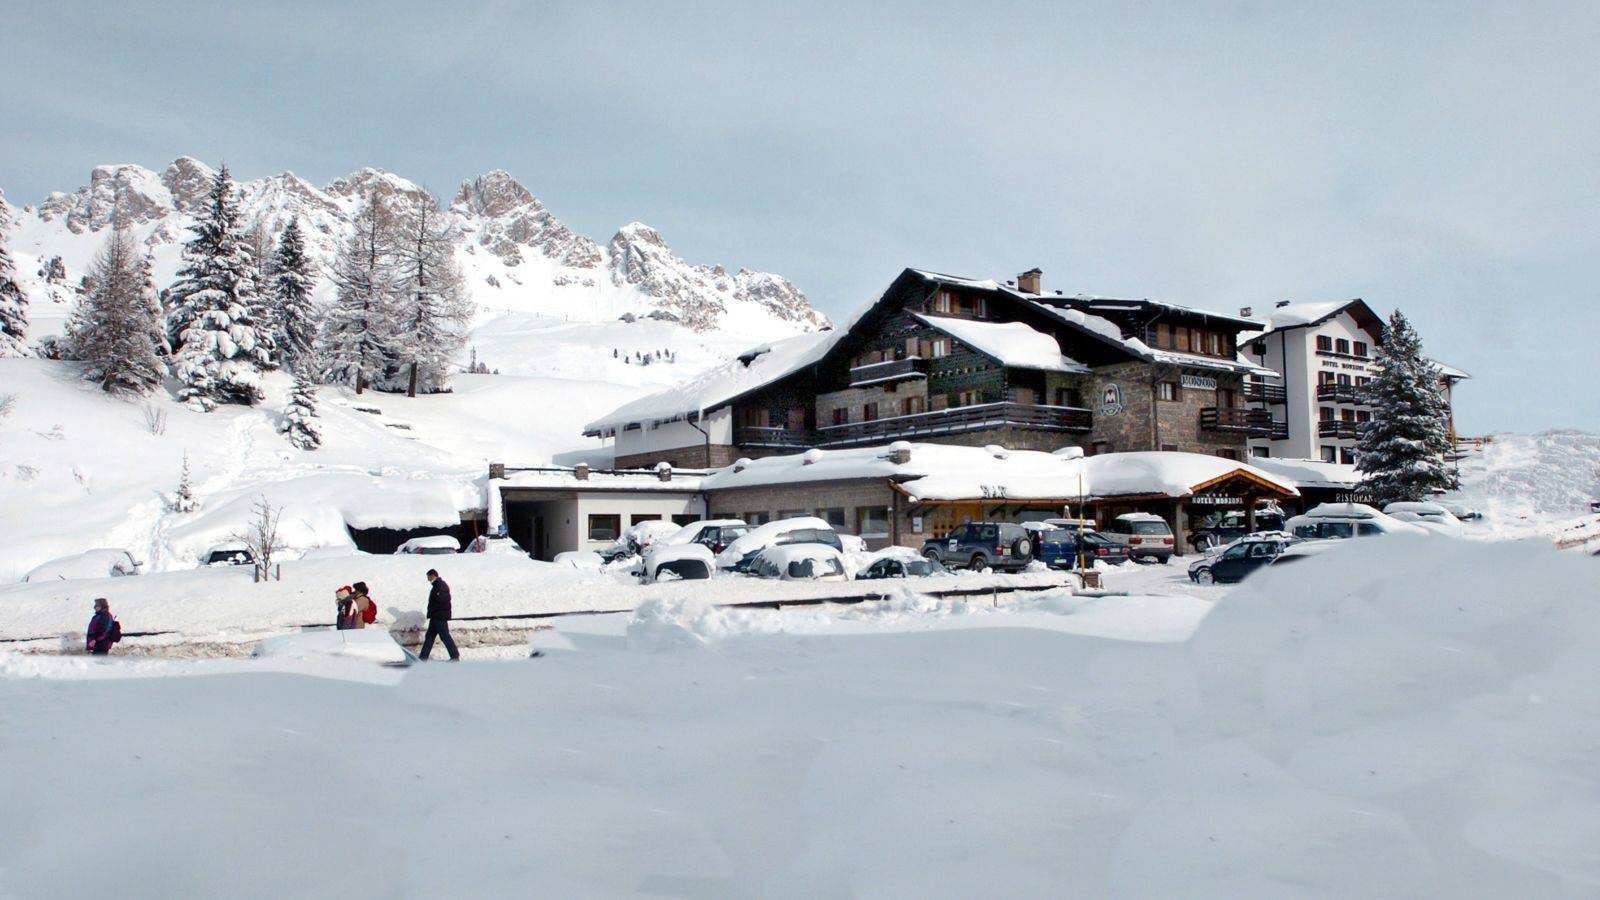 Hotel Monzoni surrounded by snow during the winter season